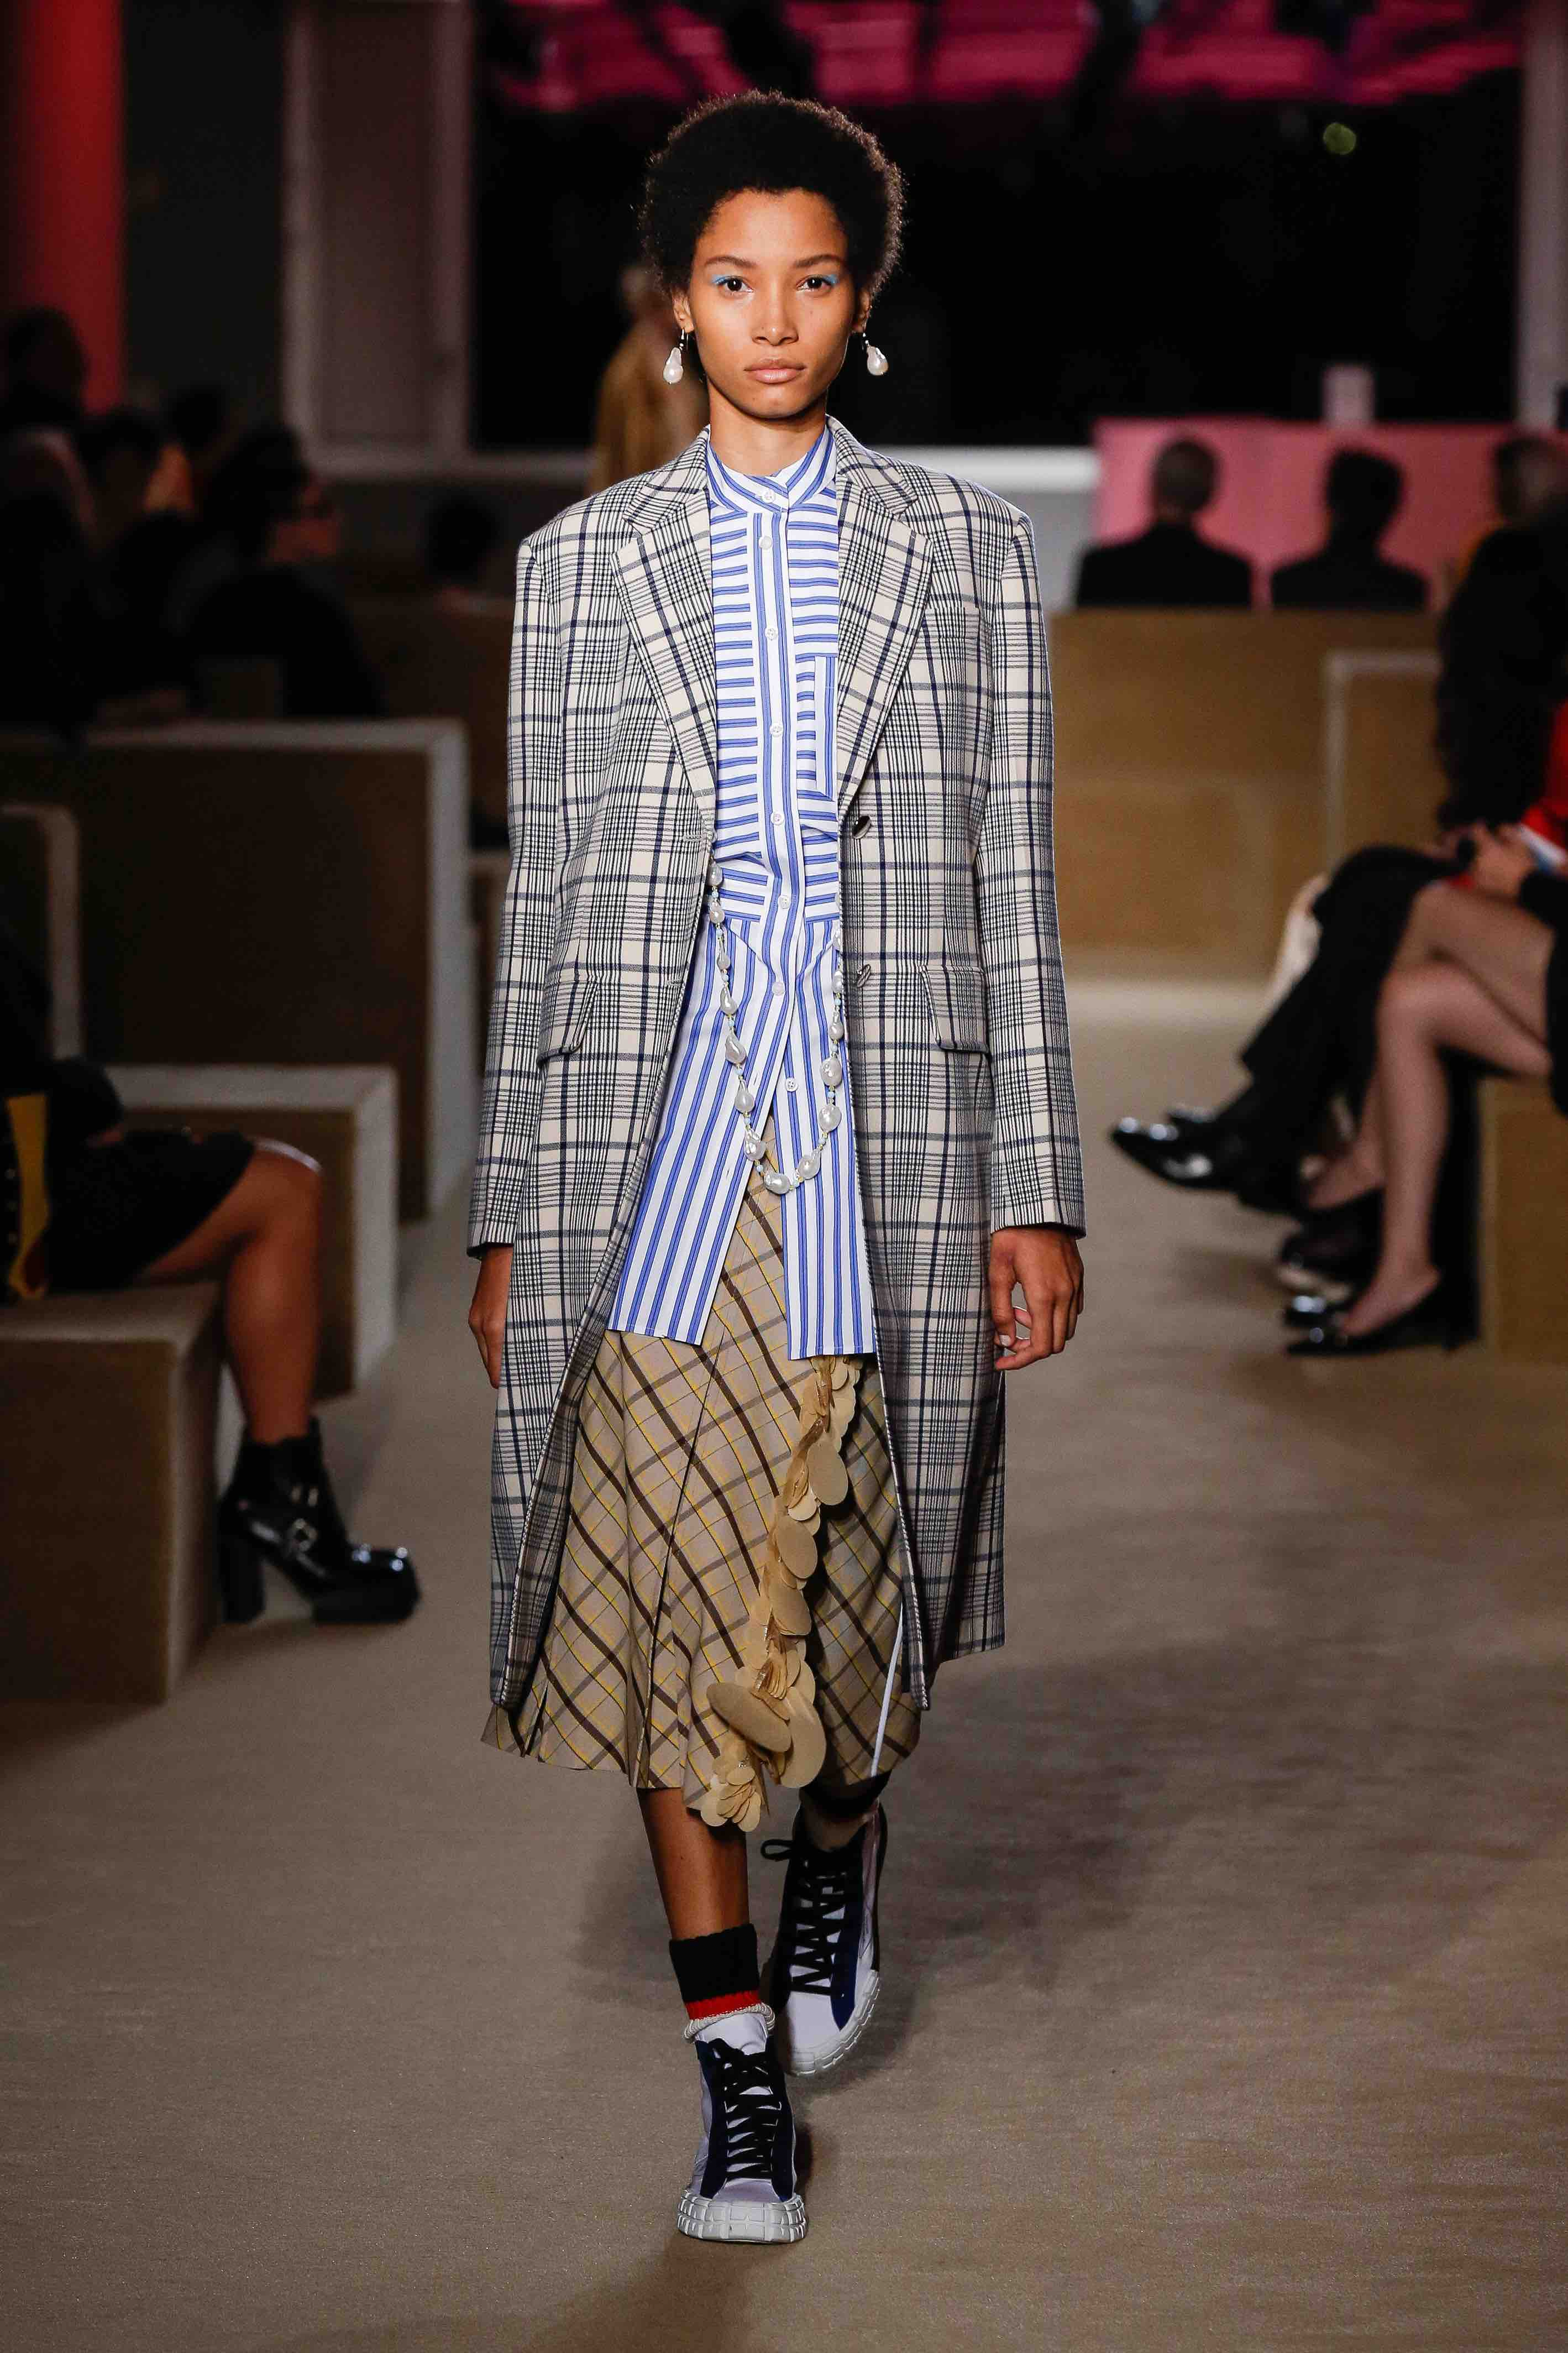 prada resort 2020 runway striped shirt